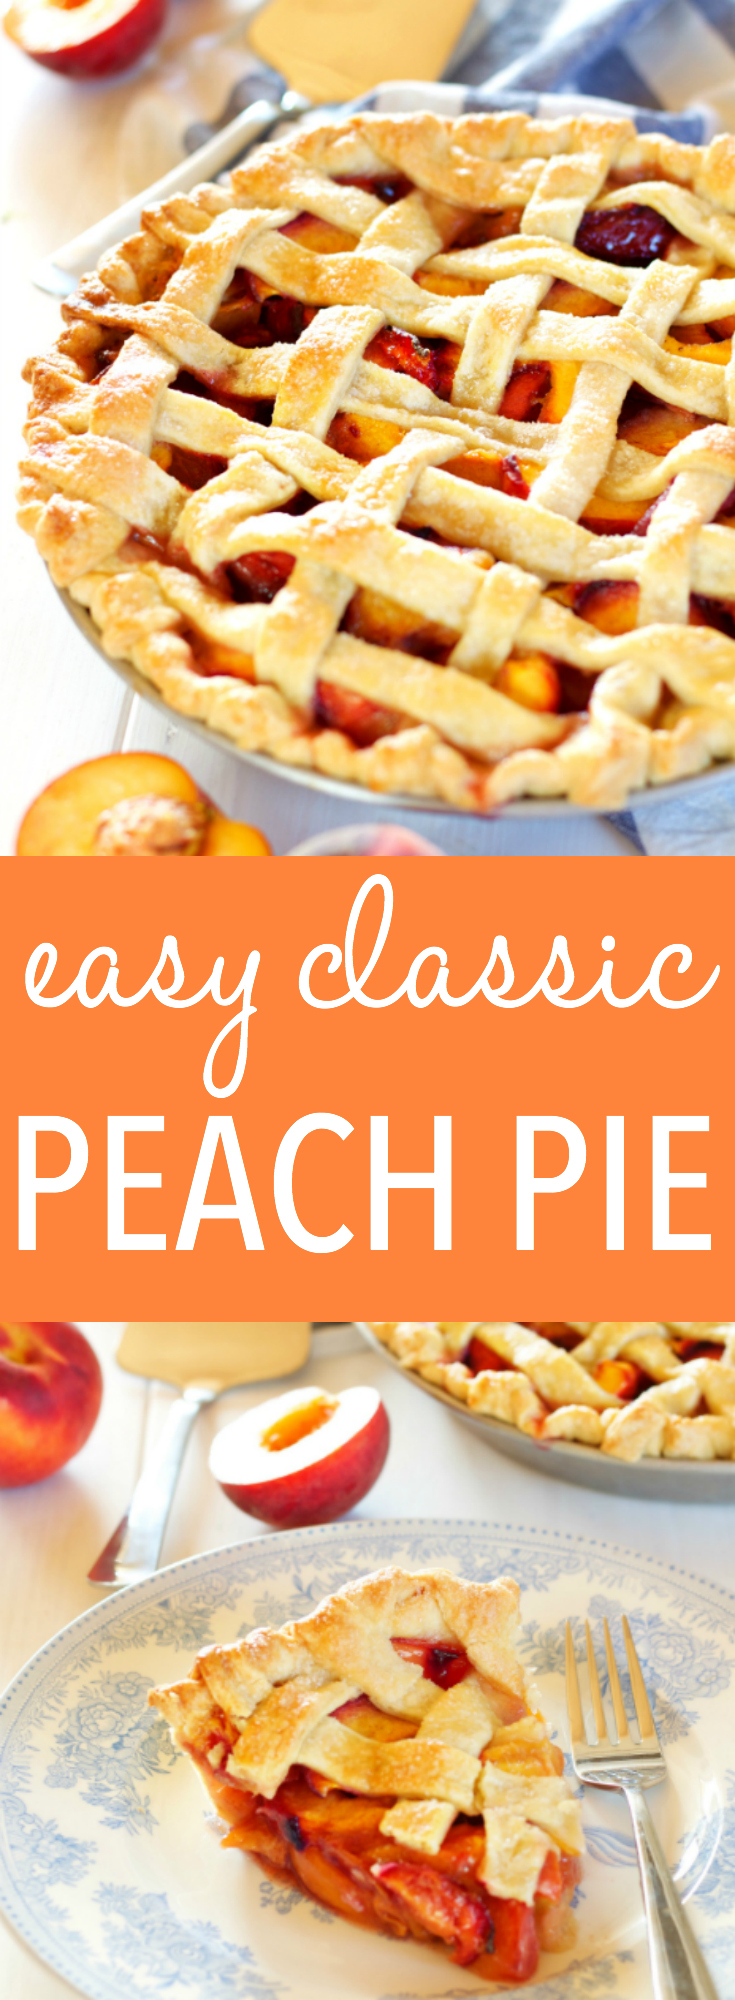 This Easy Classic Peach Pie recipe is simple and rustic, made with a butter crust and fresh peaches. Recipe includes my pro tips for the perfect pie every time! www.thebusybaker.ca via @busybakerblog